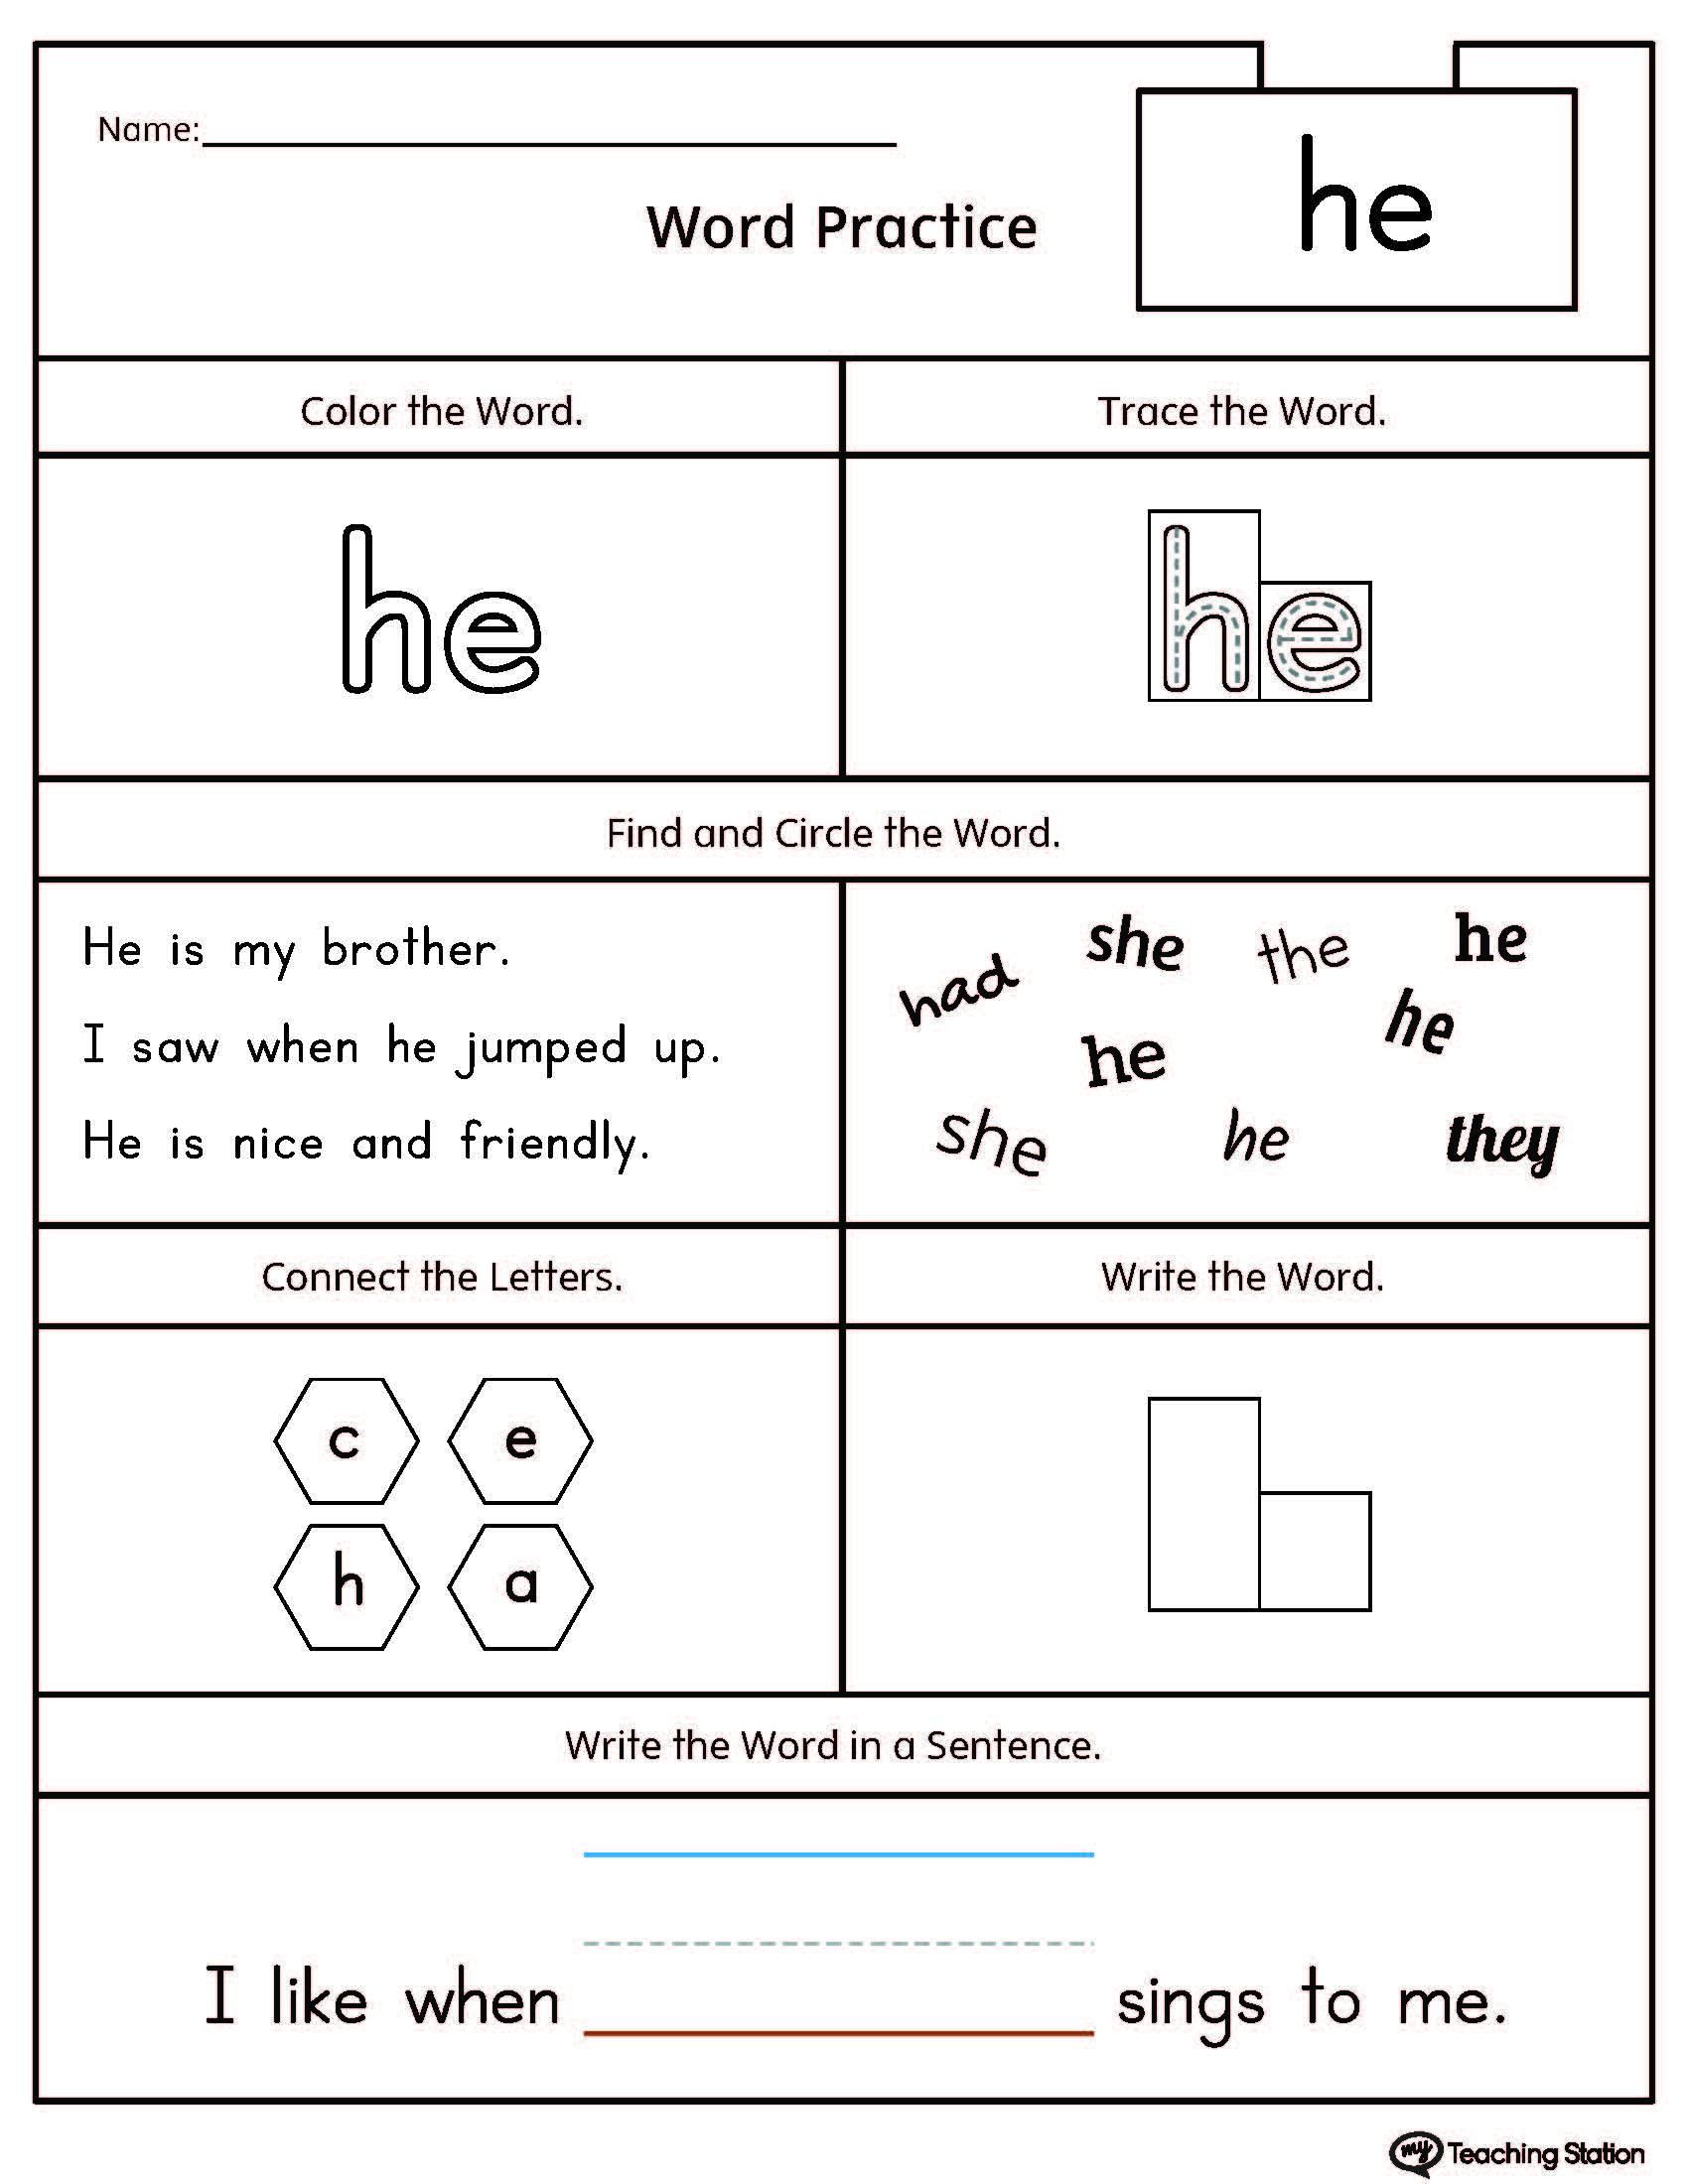 Early Childhood Shapes Worksheets | Kindergarten math, Math and ...